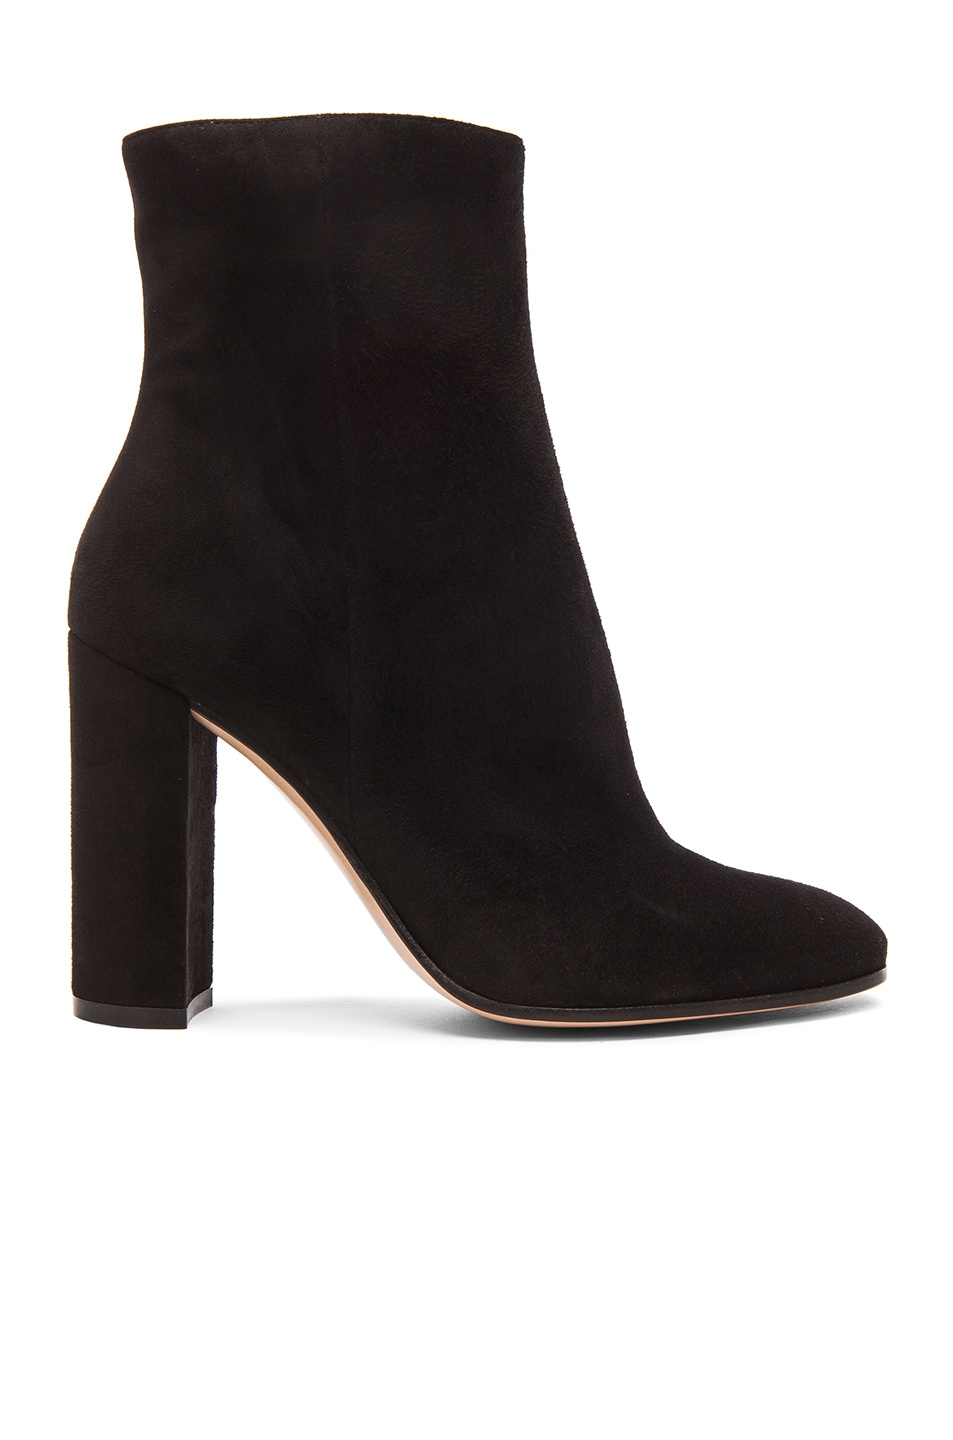 Image 1 of Gianvito Rossi Suede Booties in Black